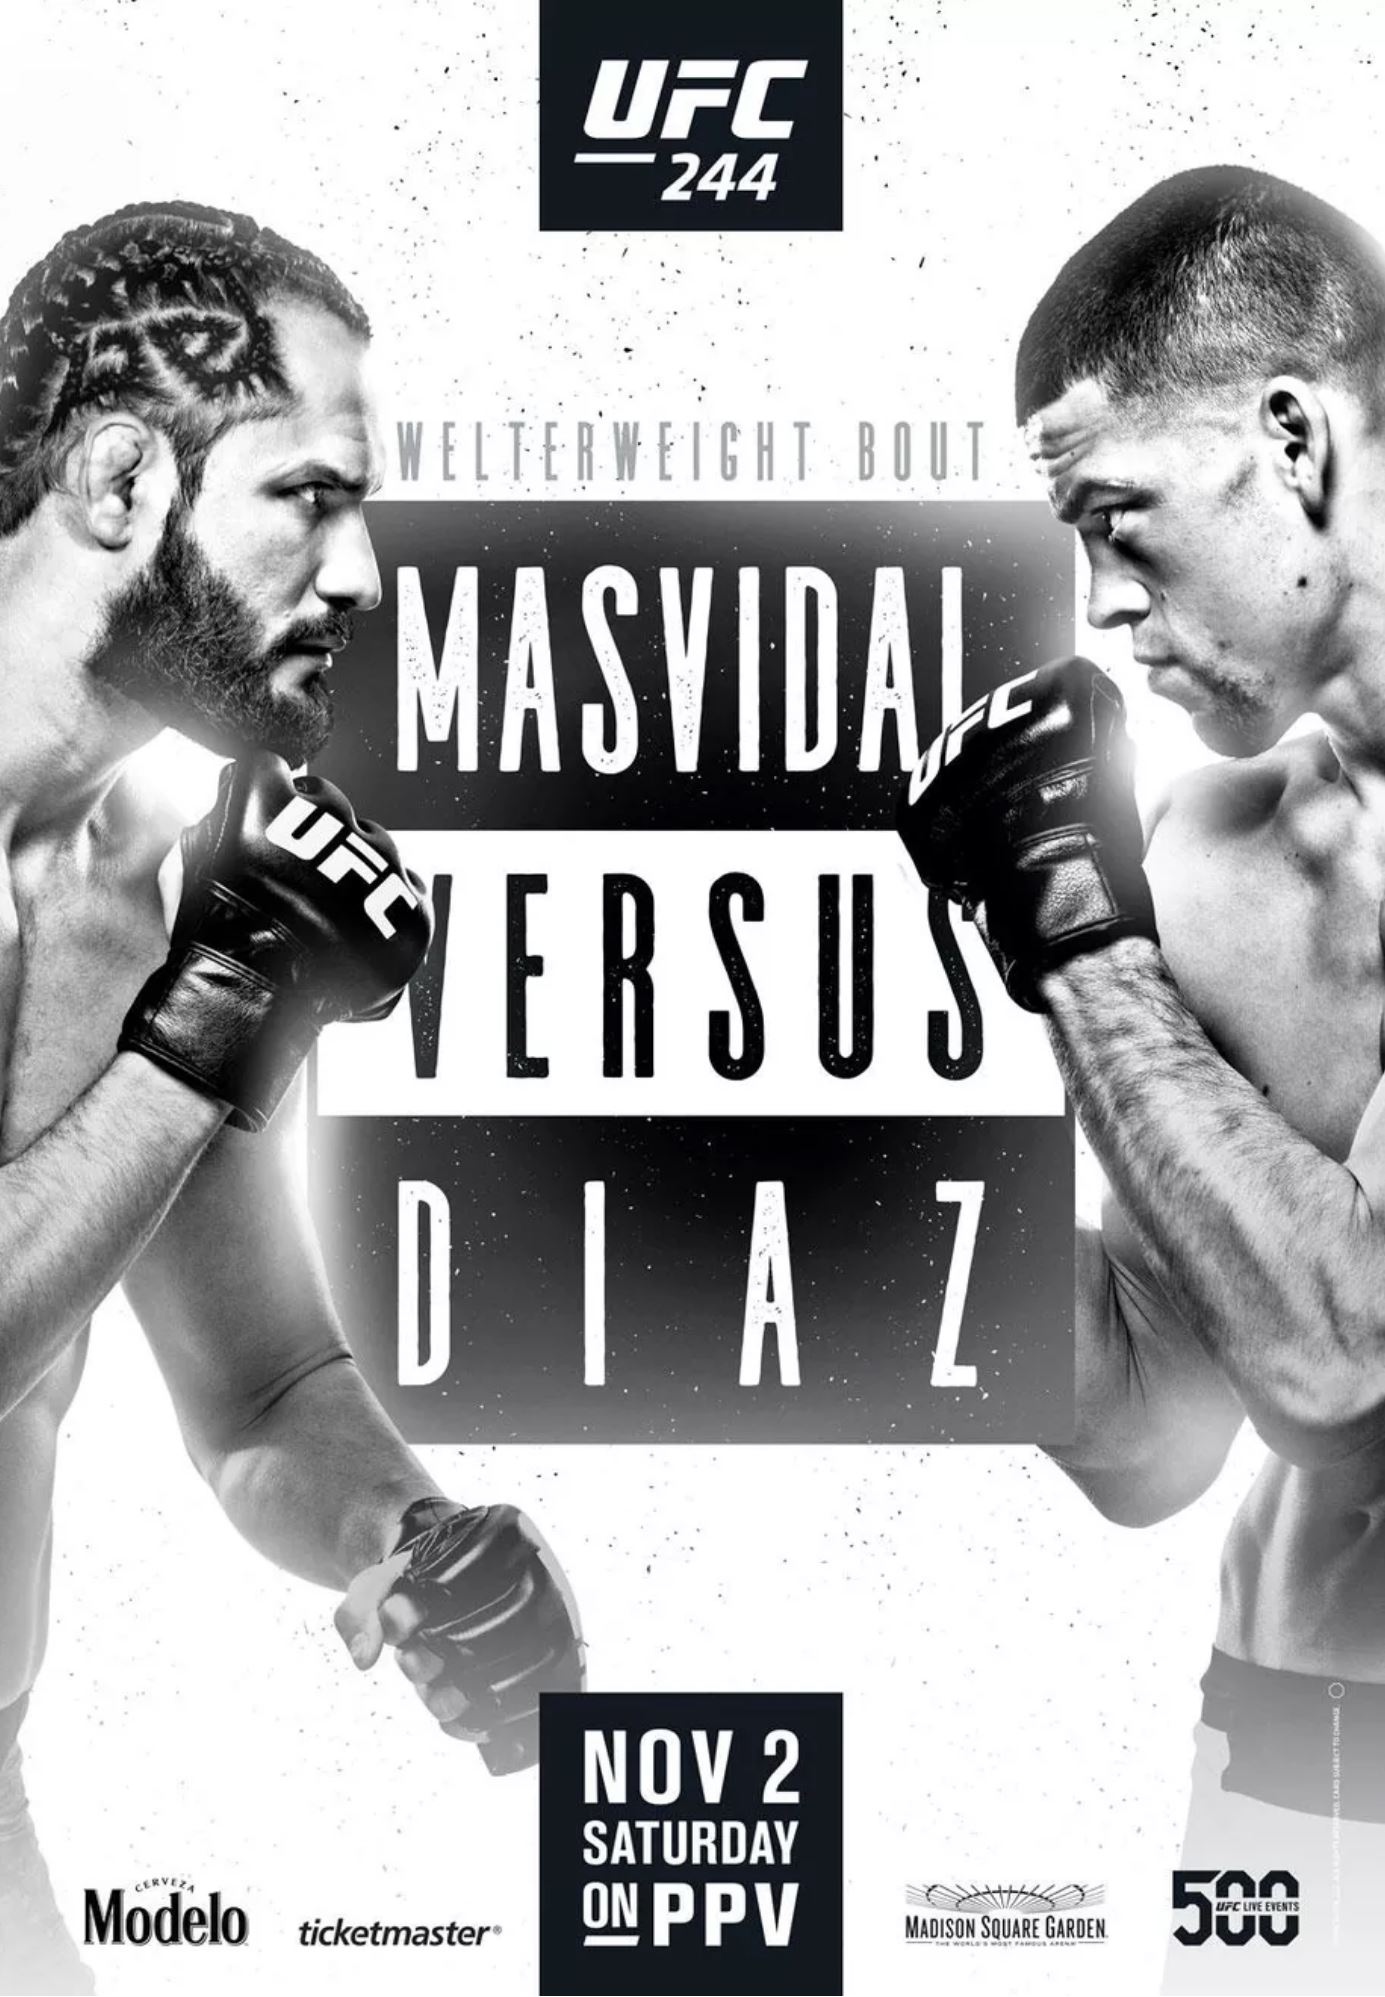 UFC 244 results poster